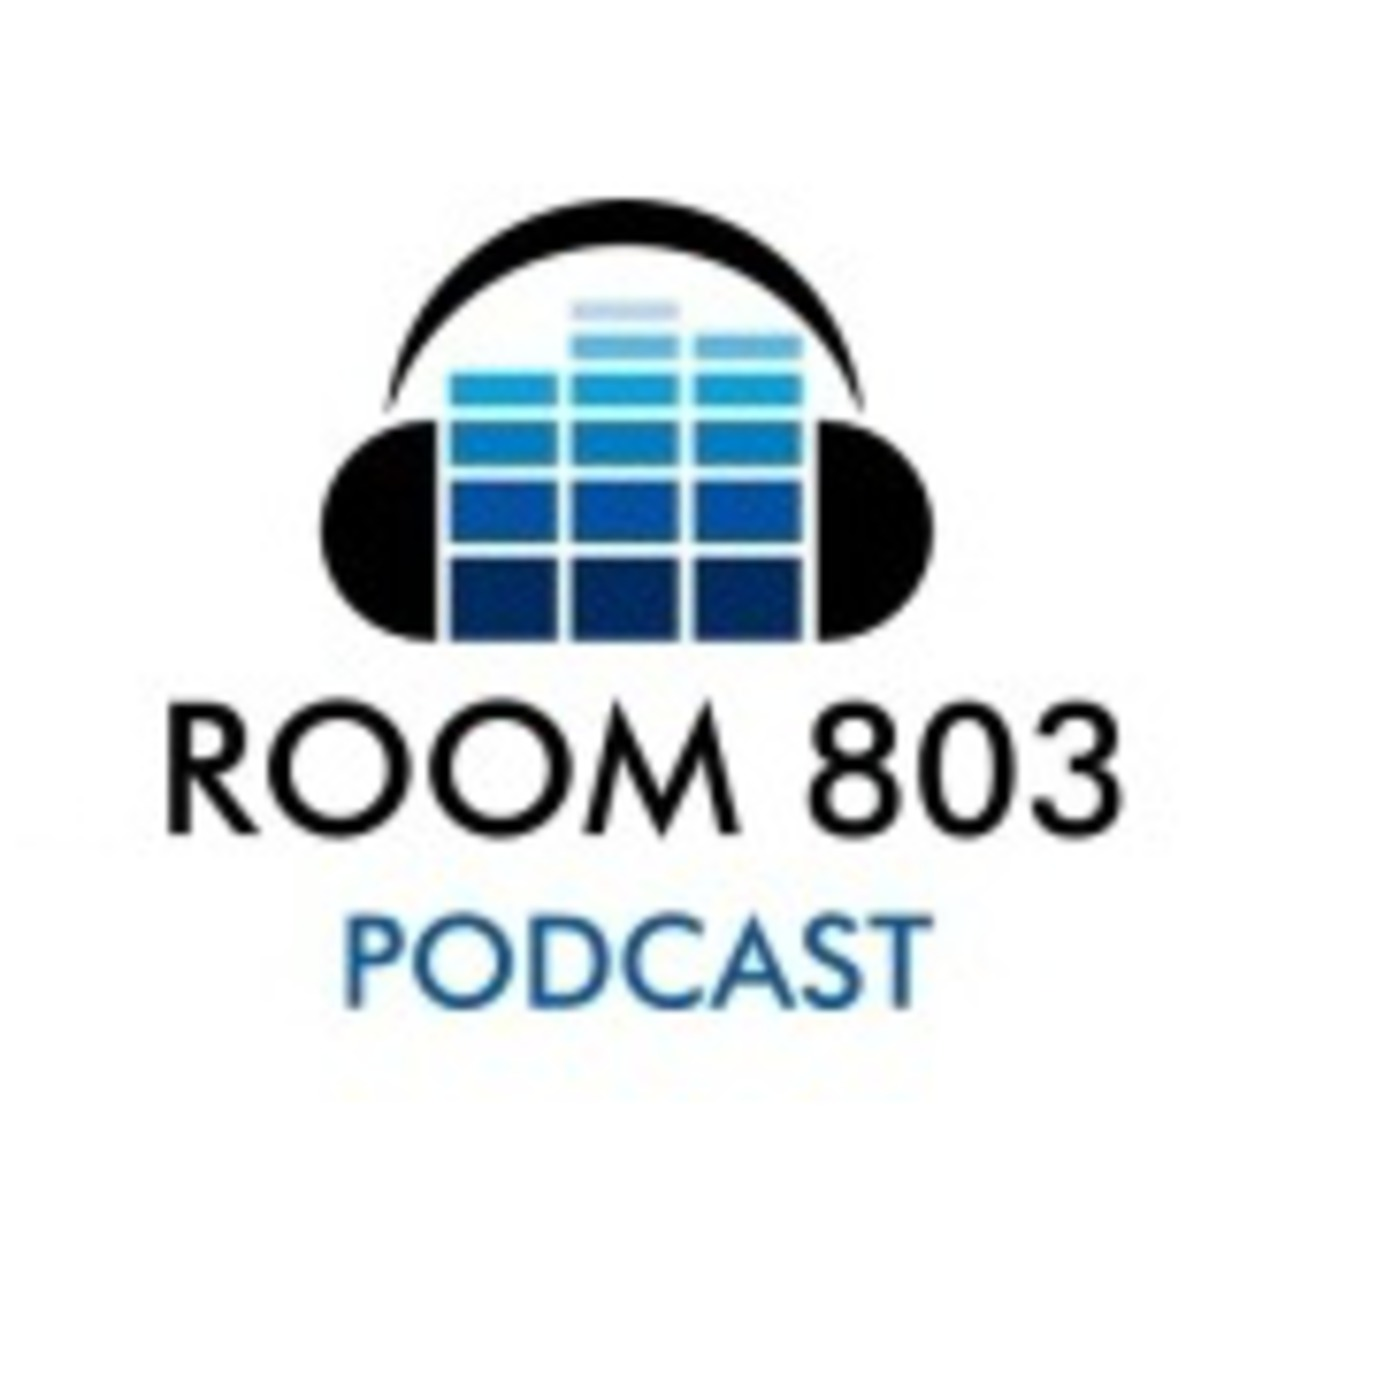 Room 803 Podcast